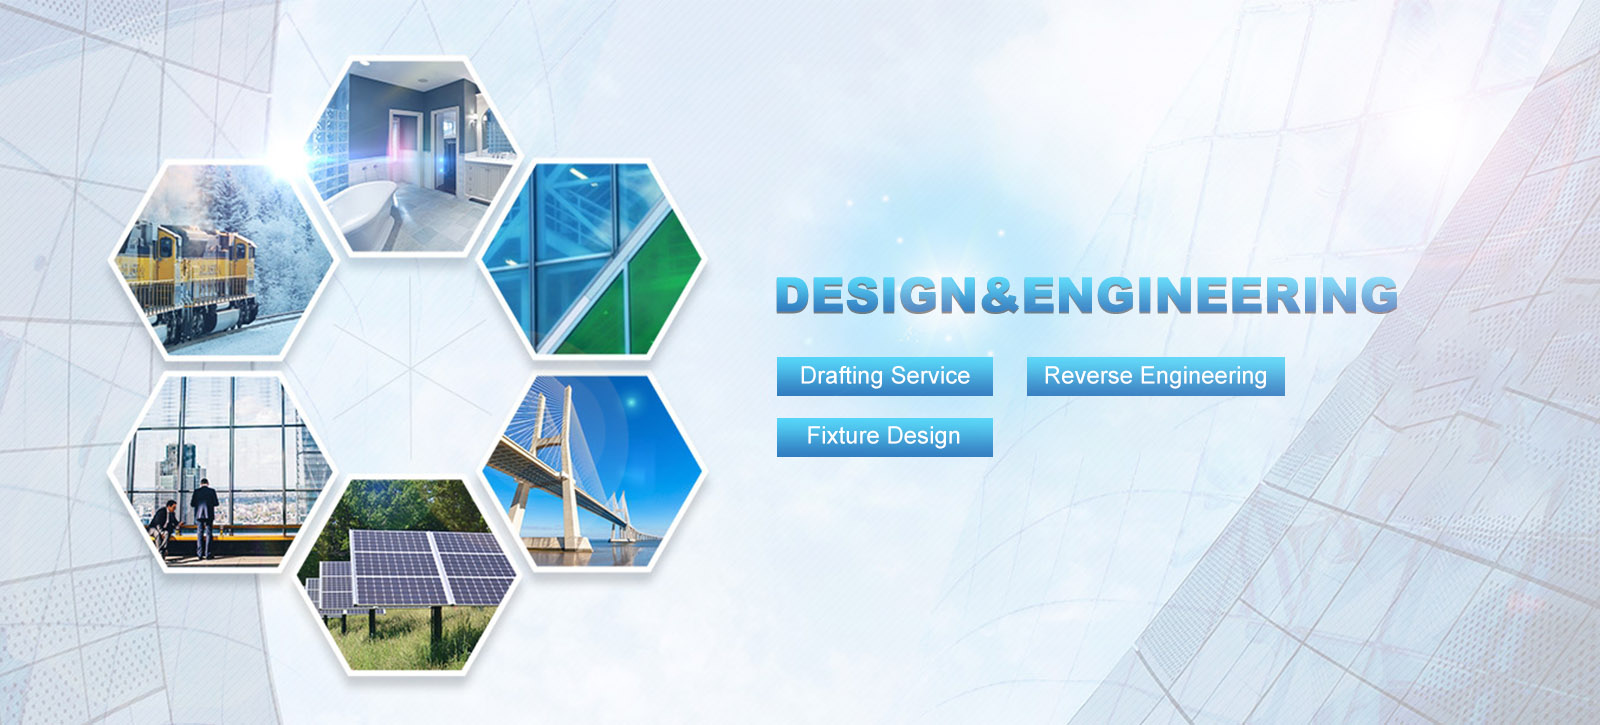 Design & Engineering